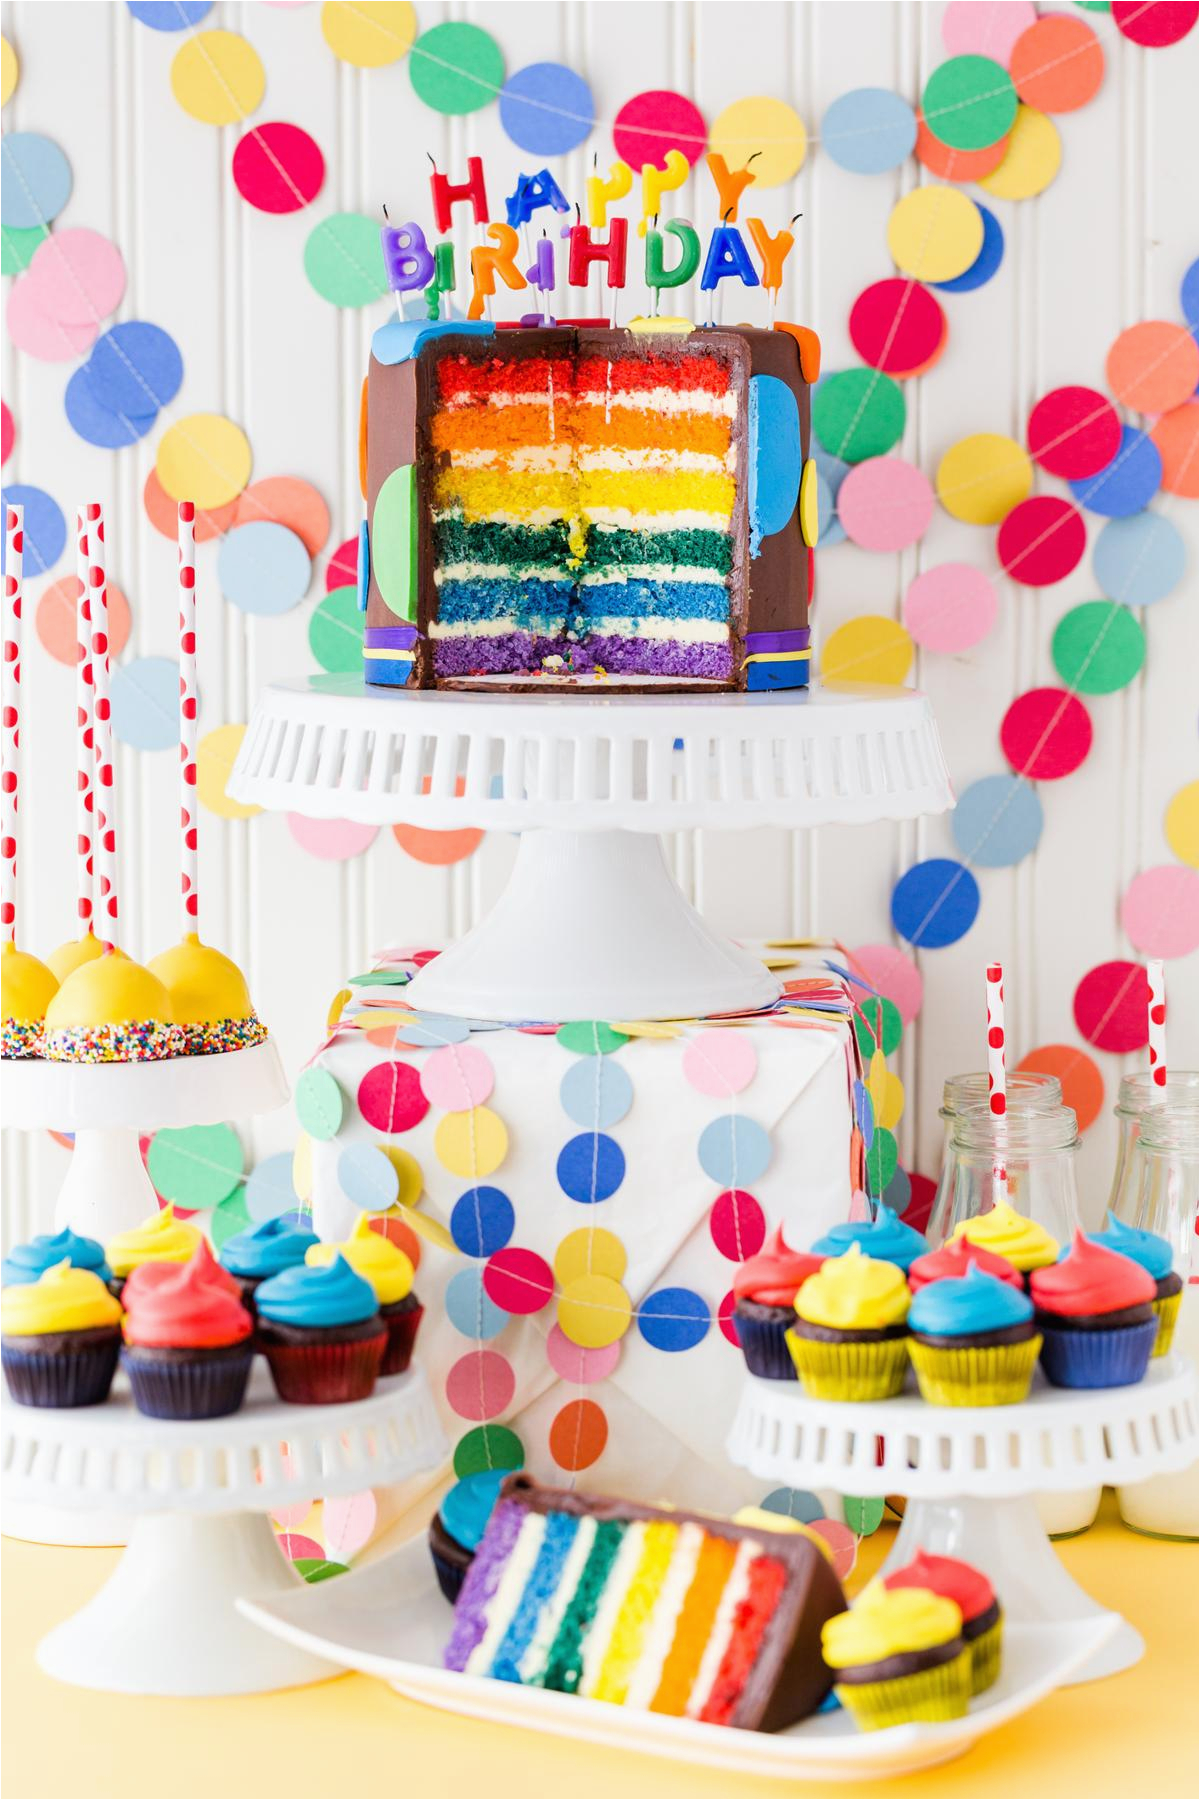 60th birthday party ideas we 39 re sure you 39 ll find nowhere else